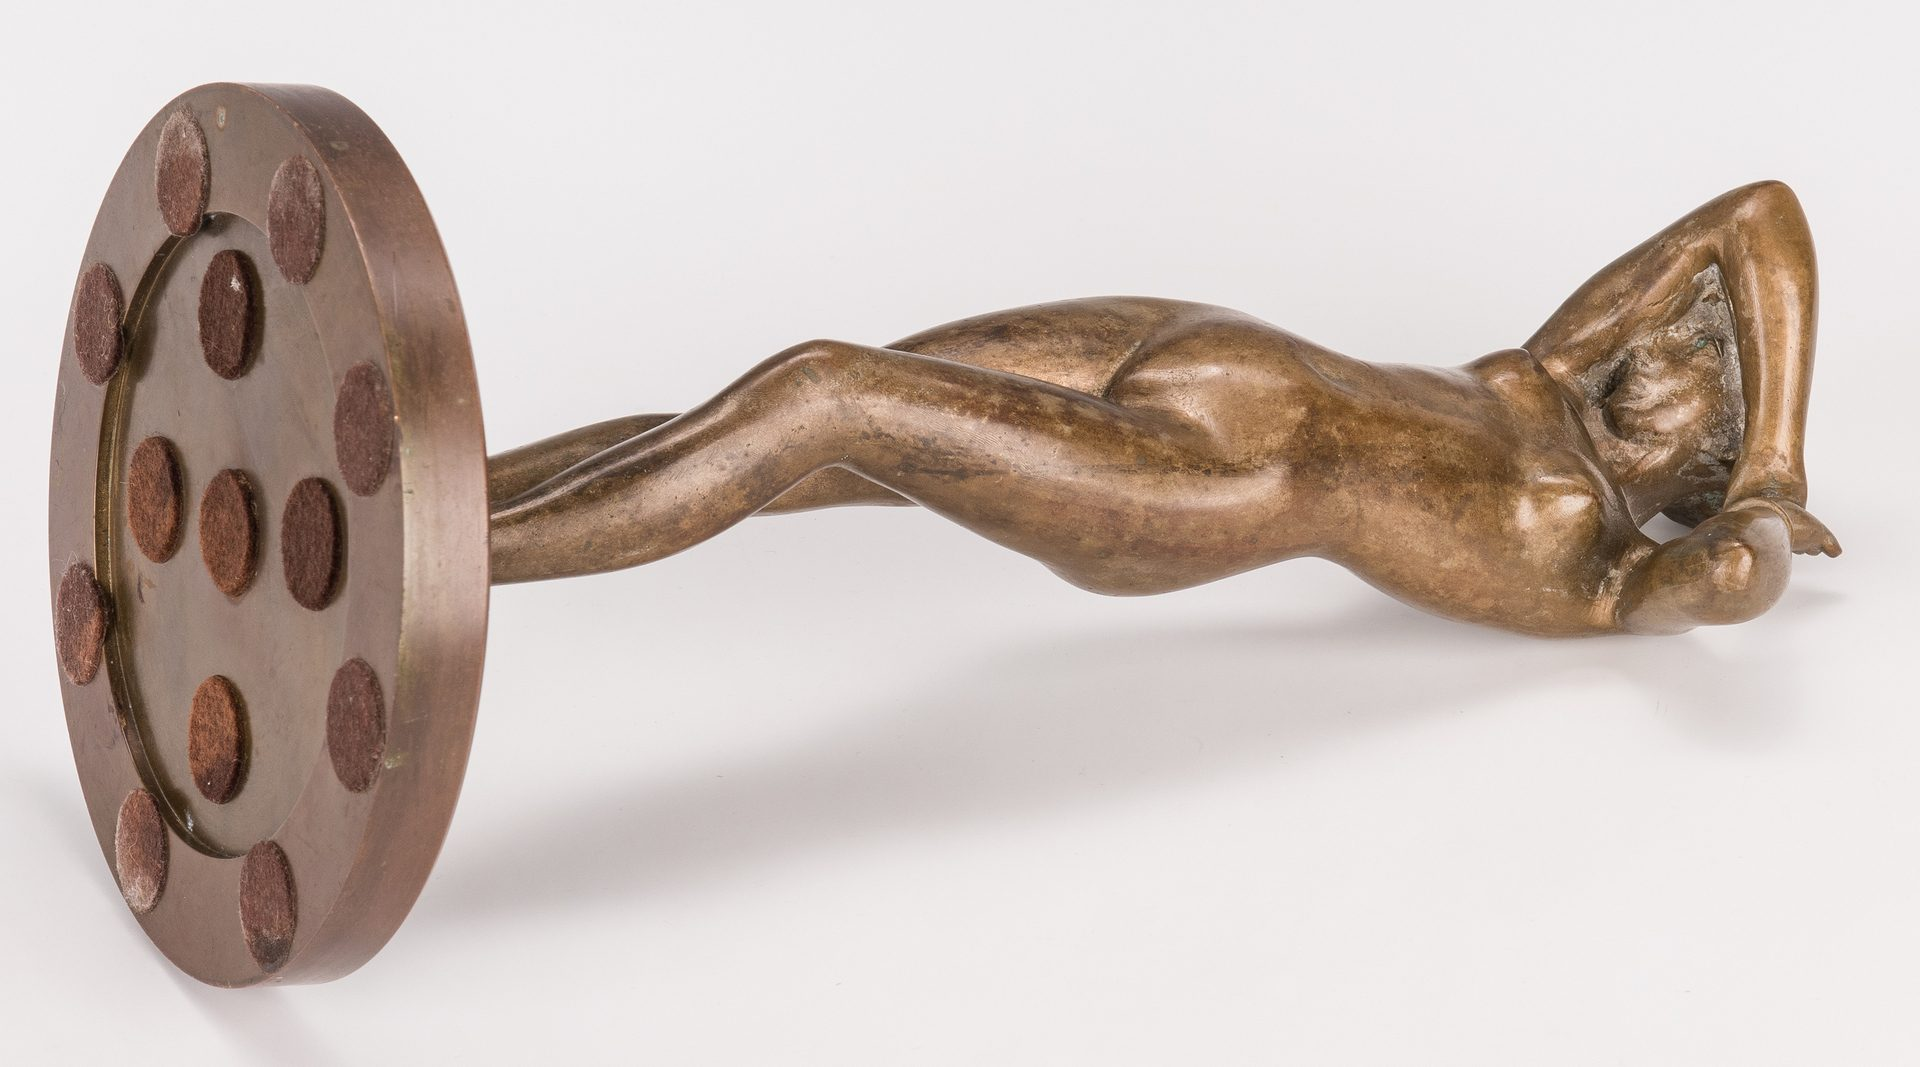 Lot 378: Bronze Sculpture of a Nude Woman